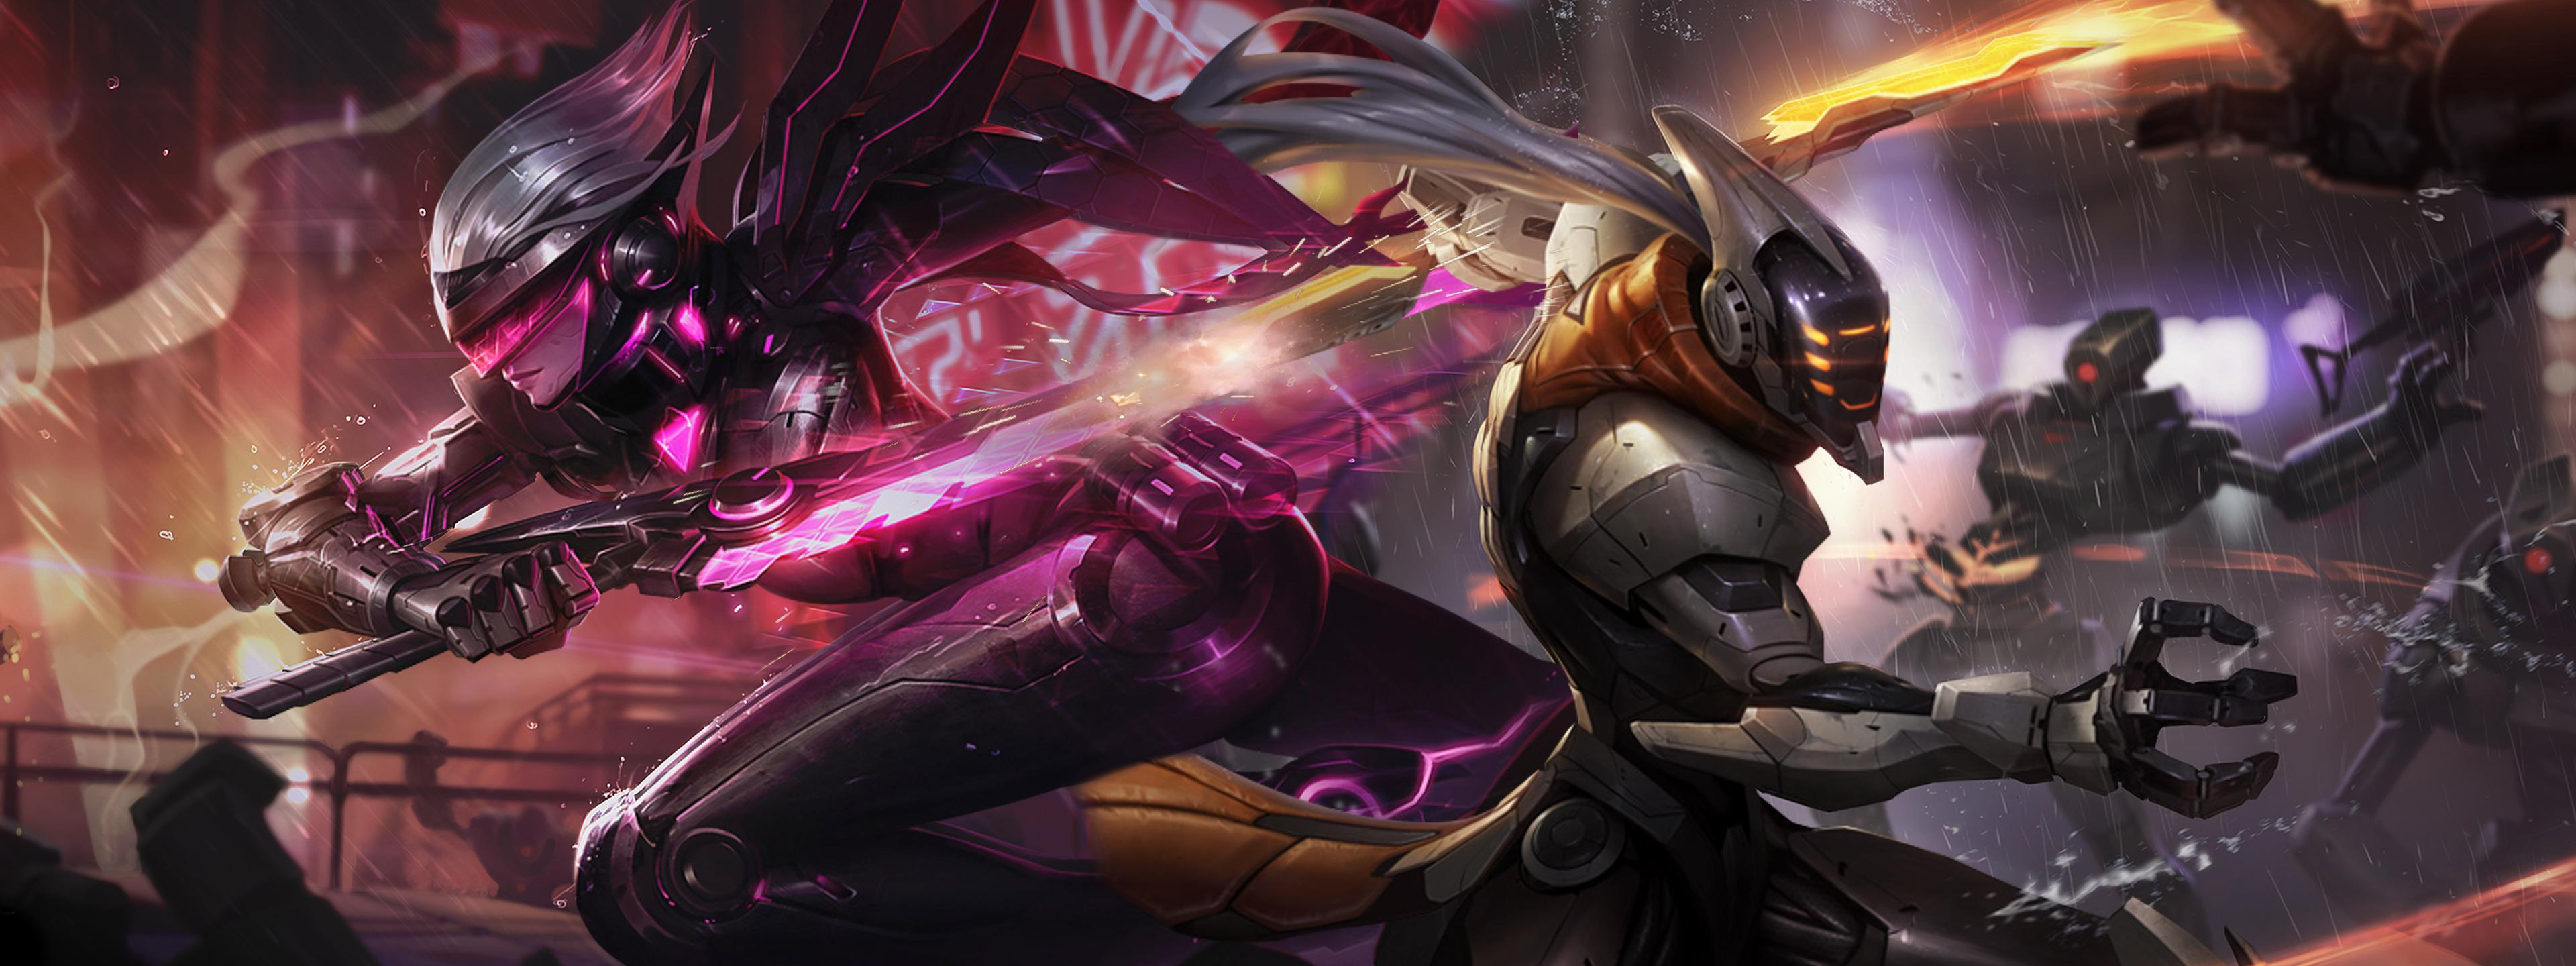 Download dual monitor wallpaper league of legends   PROJECT Yi Fiora 3840x1440